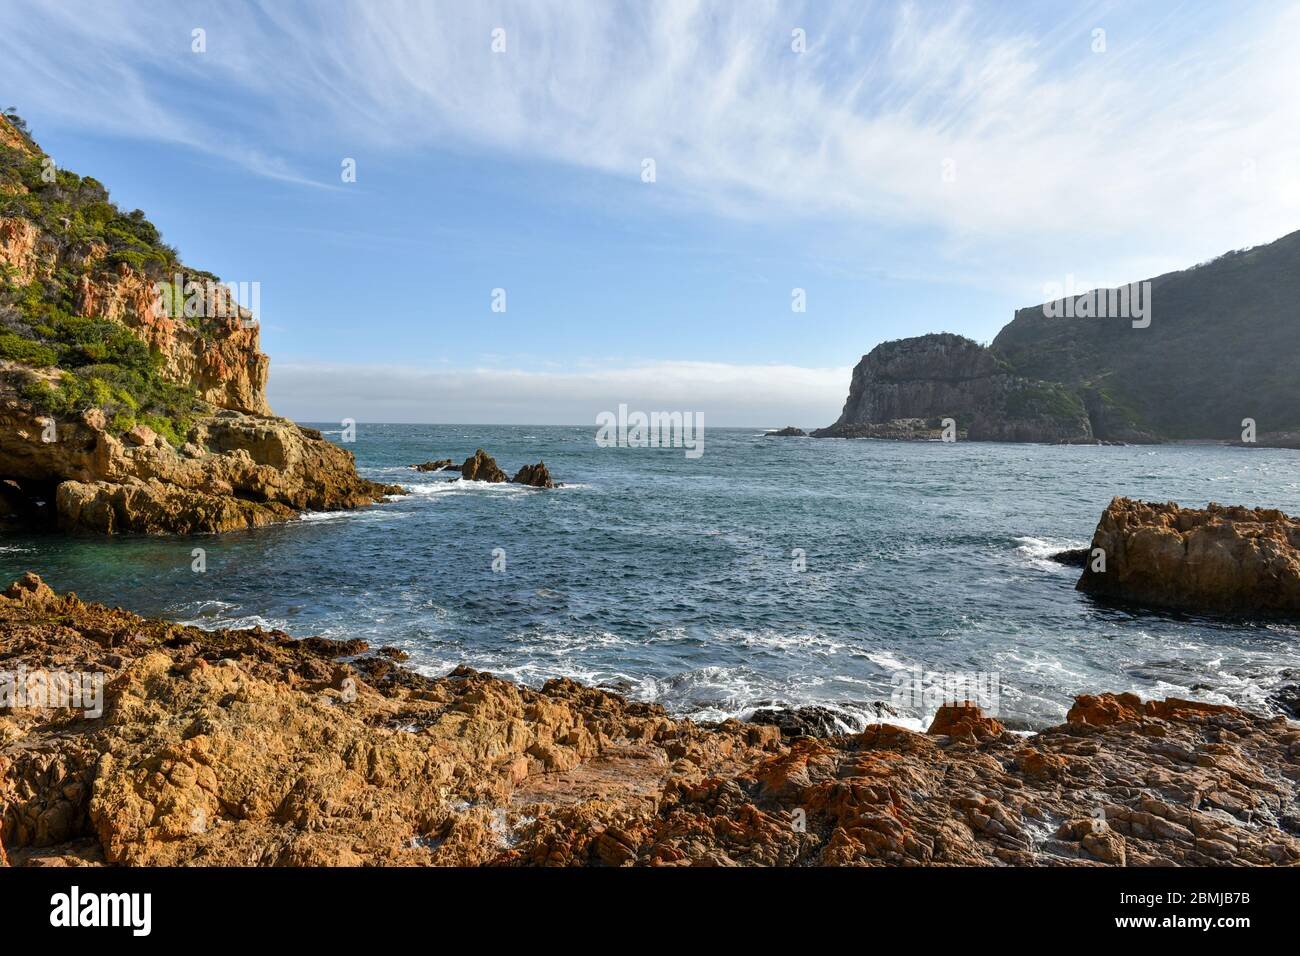 Knysna Heads is one of the top tourist attractions located on the Garden Route, South Africa Stock Photo